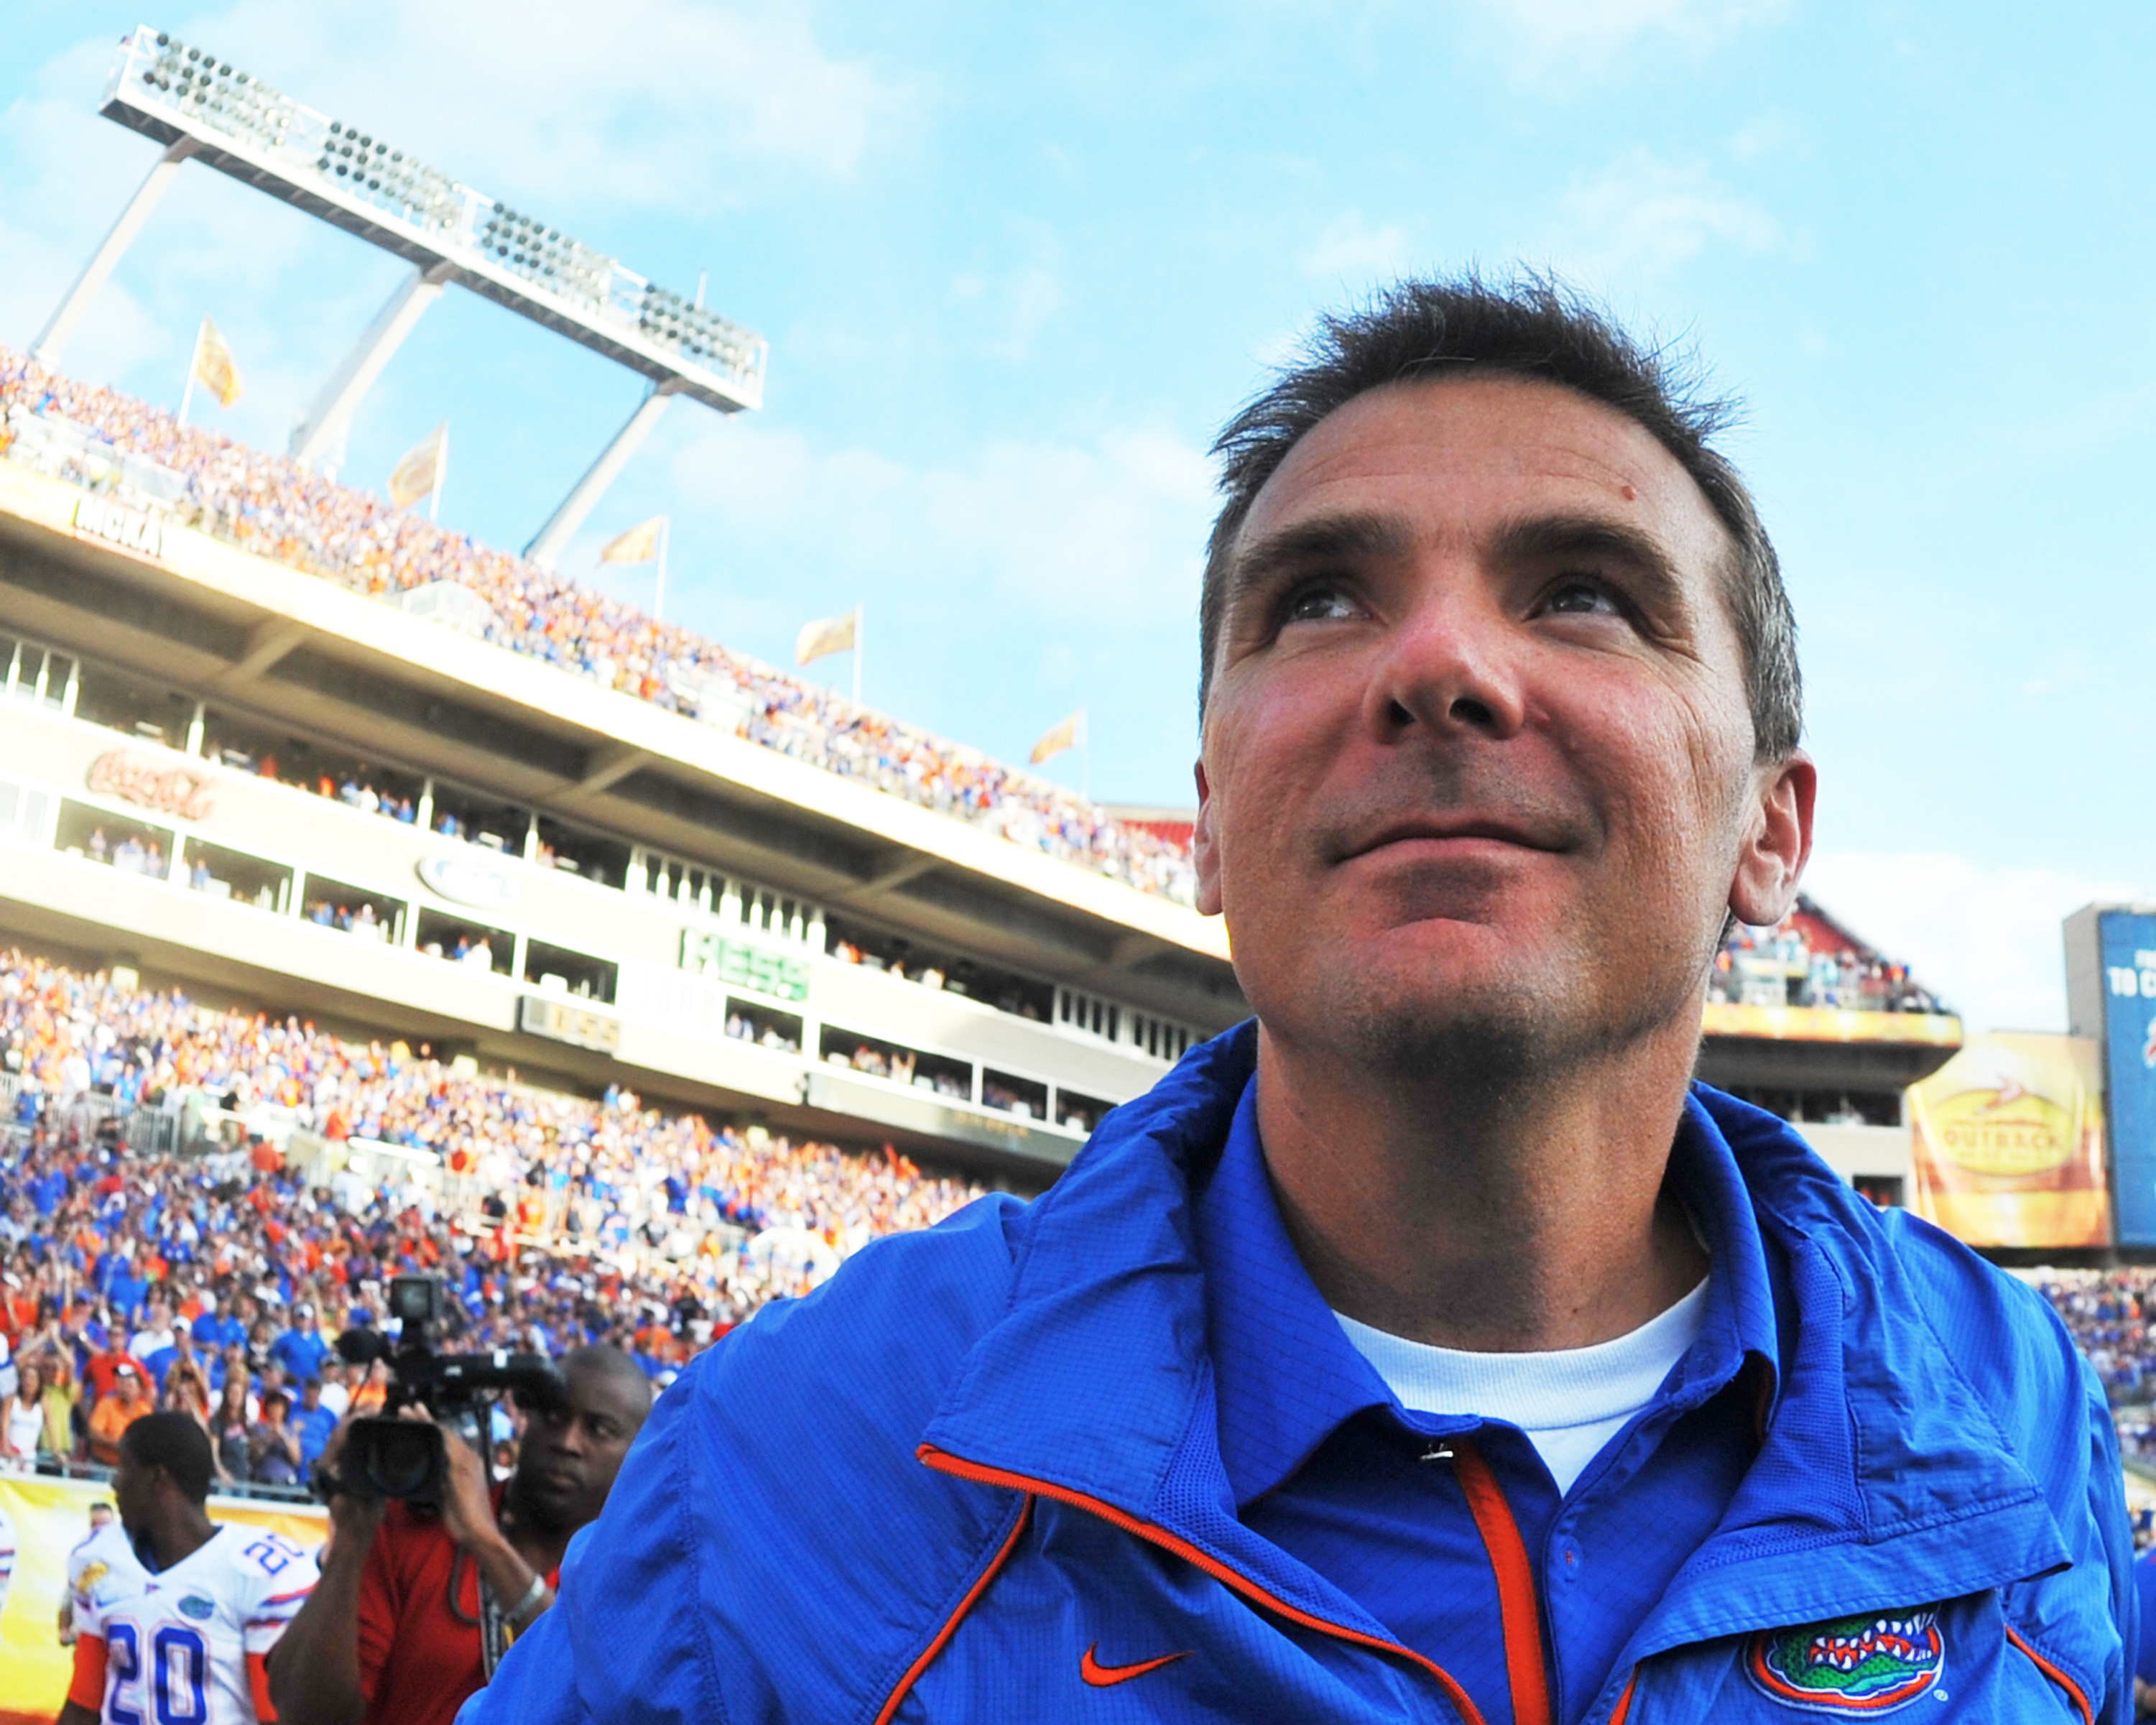 TAMPA, FL - JANUARY 1:  Coach Urban Meyer of the Florida Gators leaves the field after play against the Penn State Nittany Lions January 1, 2010 in the 25th Outback Bowl at Raymond James Stadium in Tampa, Florida.  (Photo by Al Messerschmidt/Getty Images)